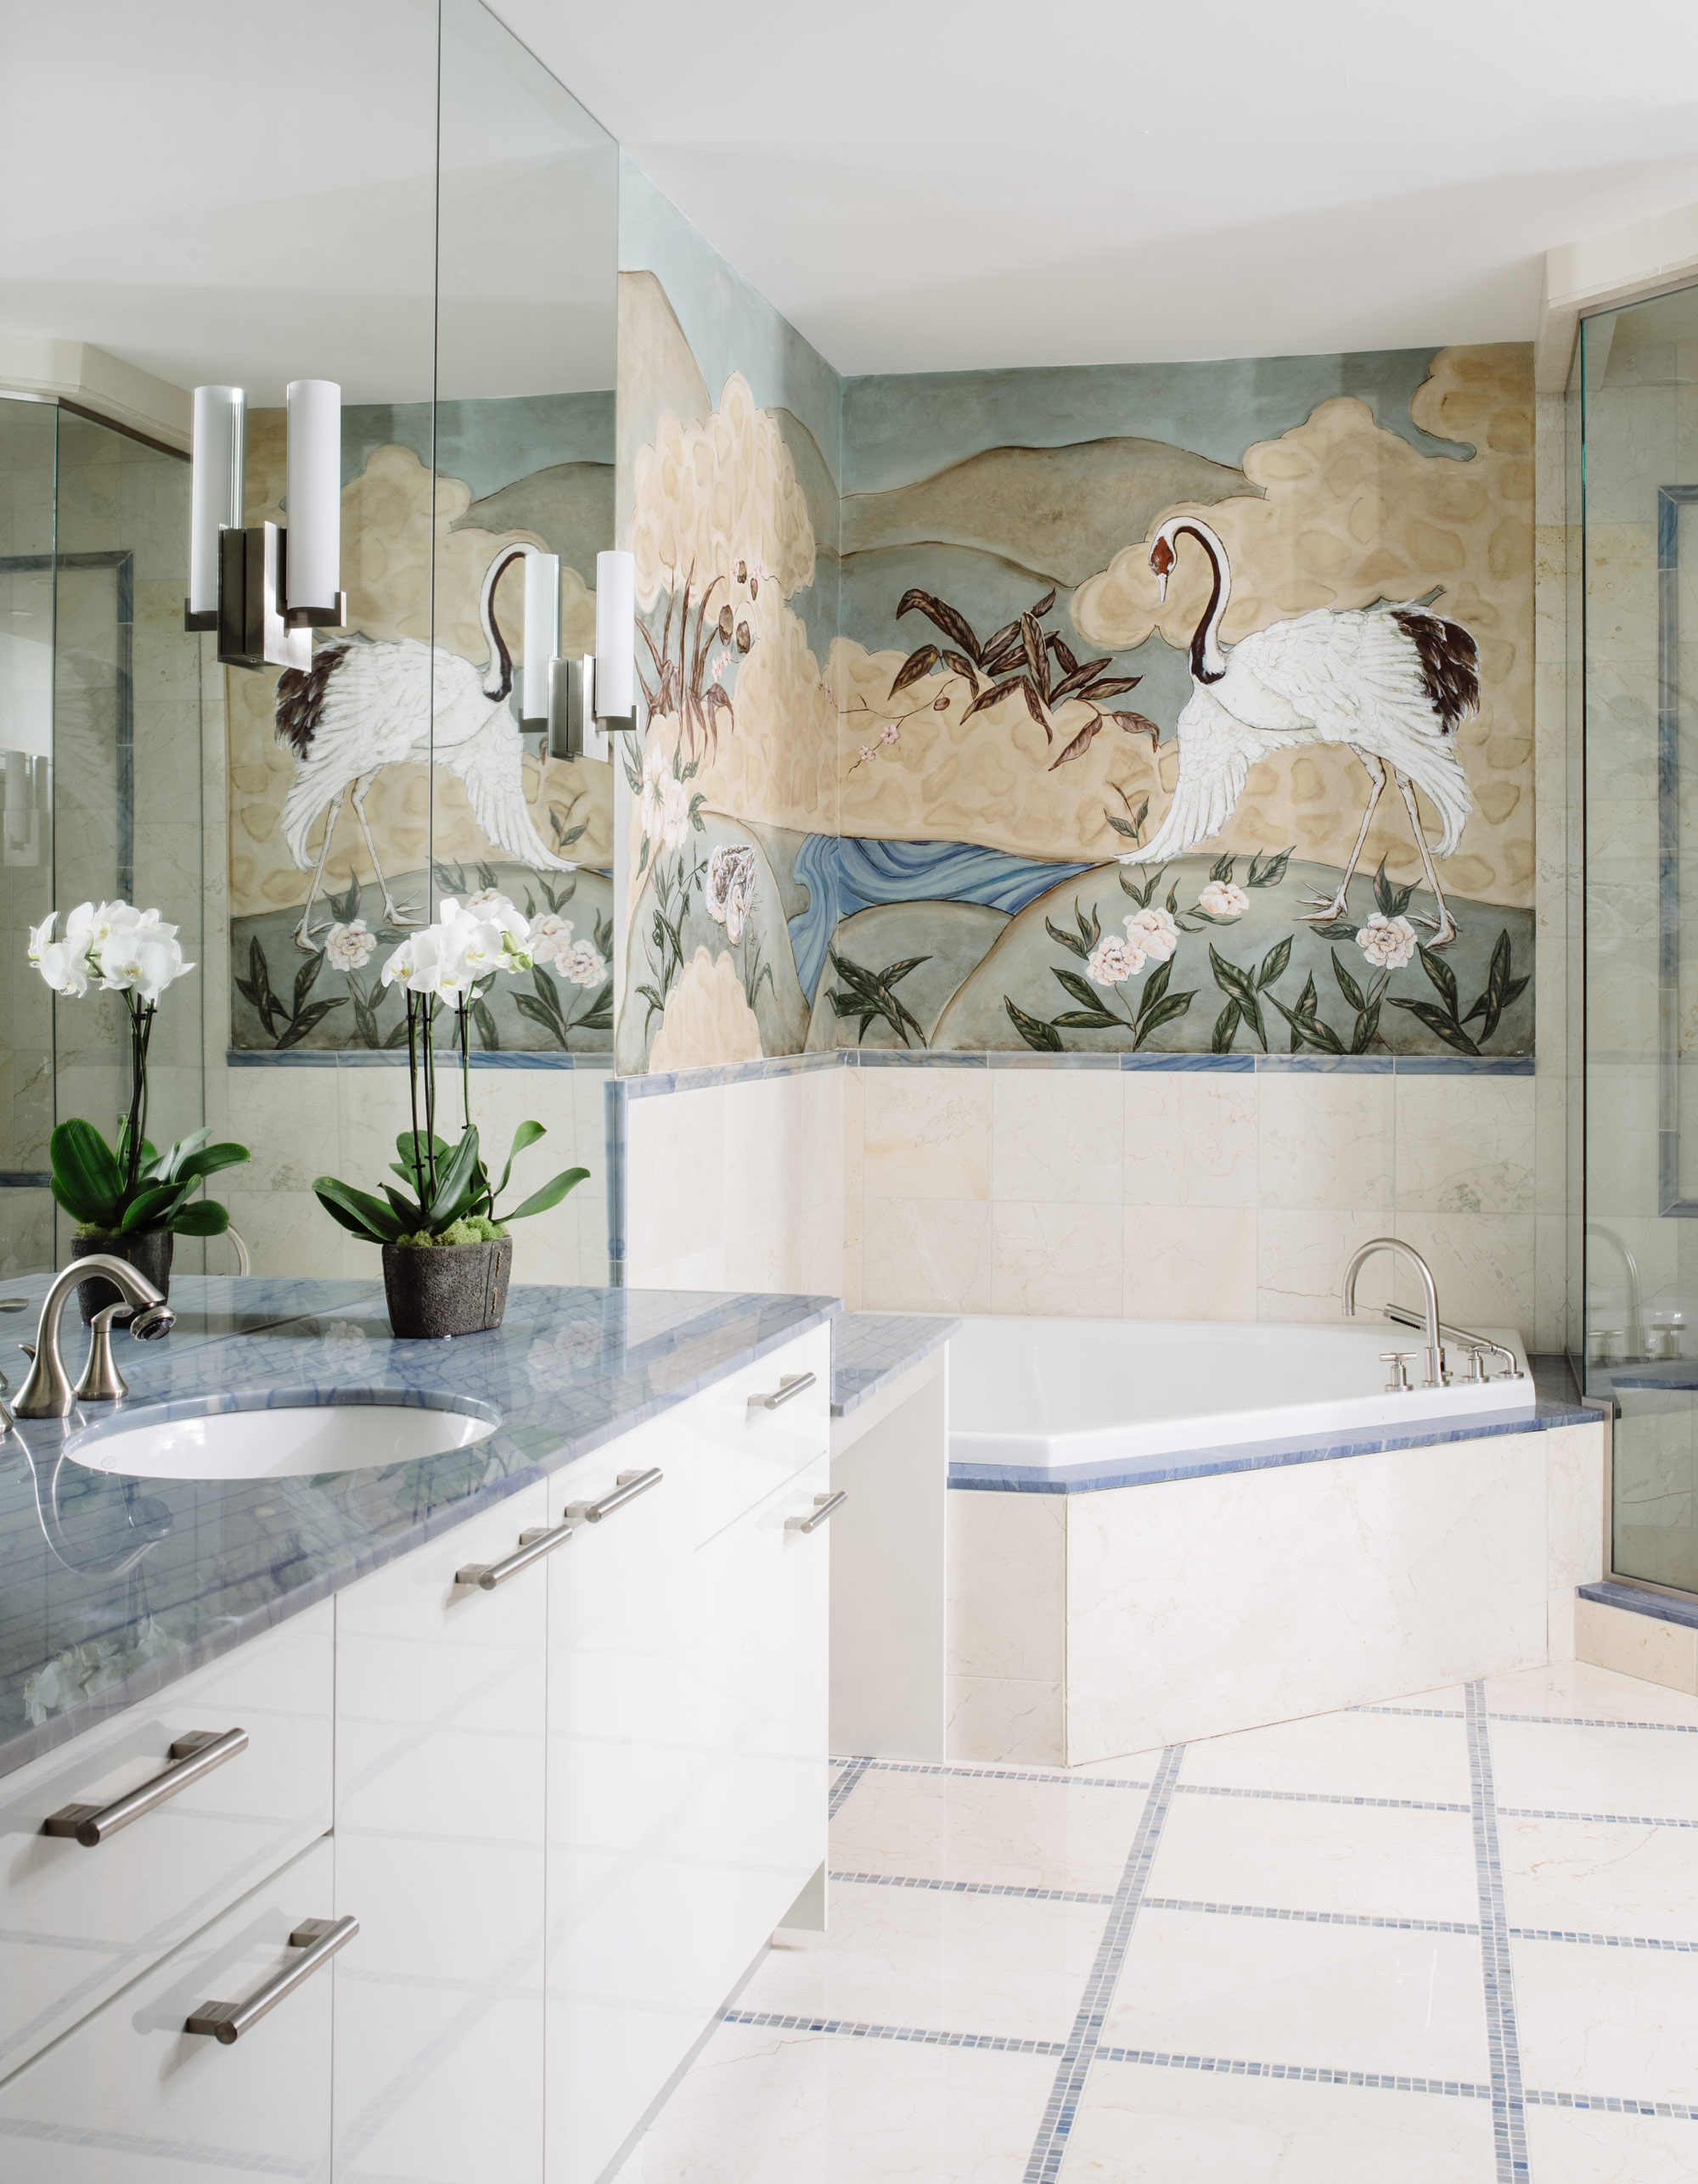 Victoria+Sanchez+Washington+Interior+Design+bathroom.jpg